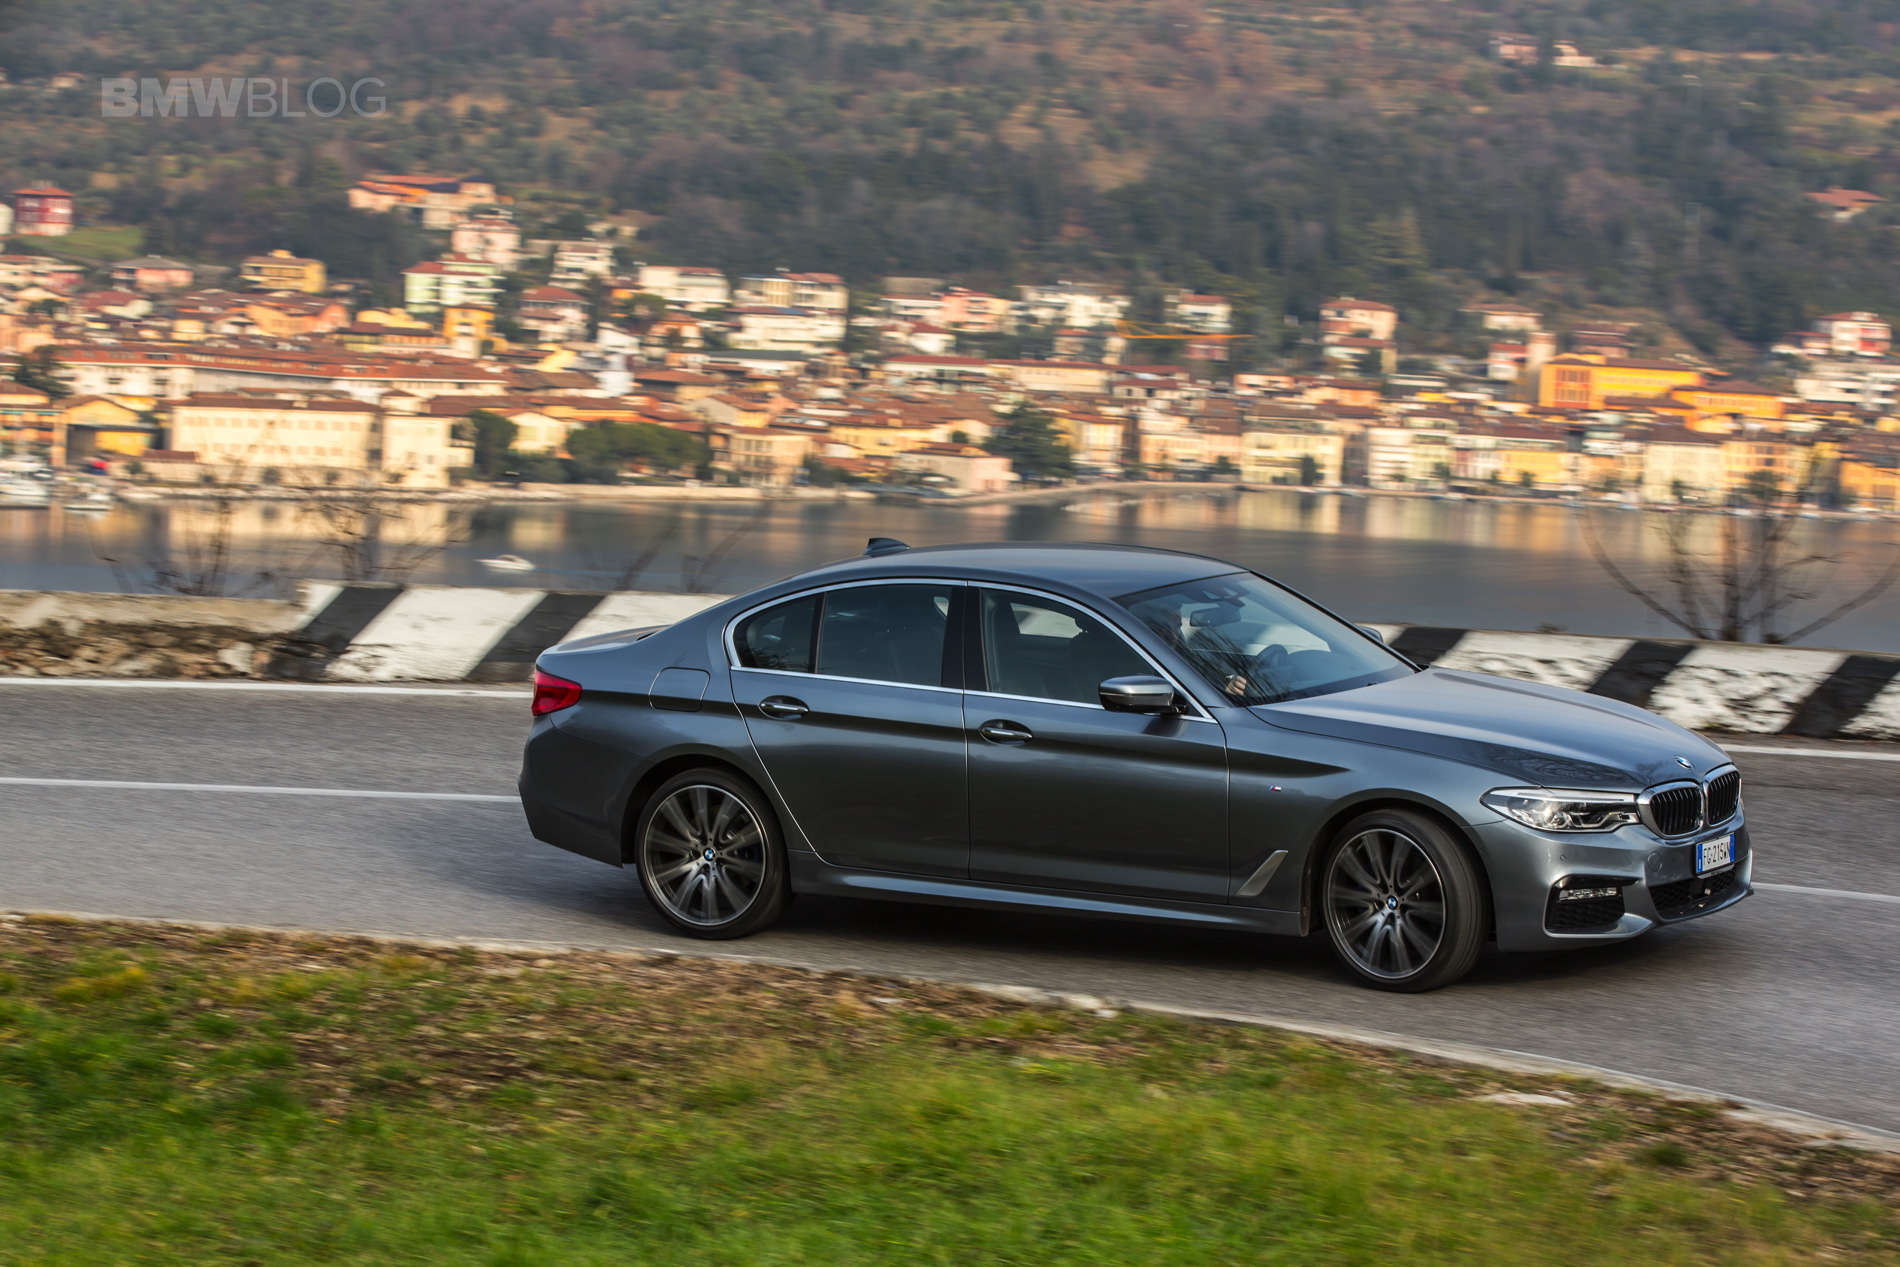 2017 BMW 5 Series Italy 46